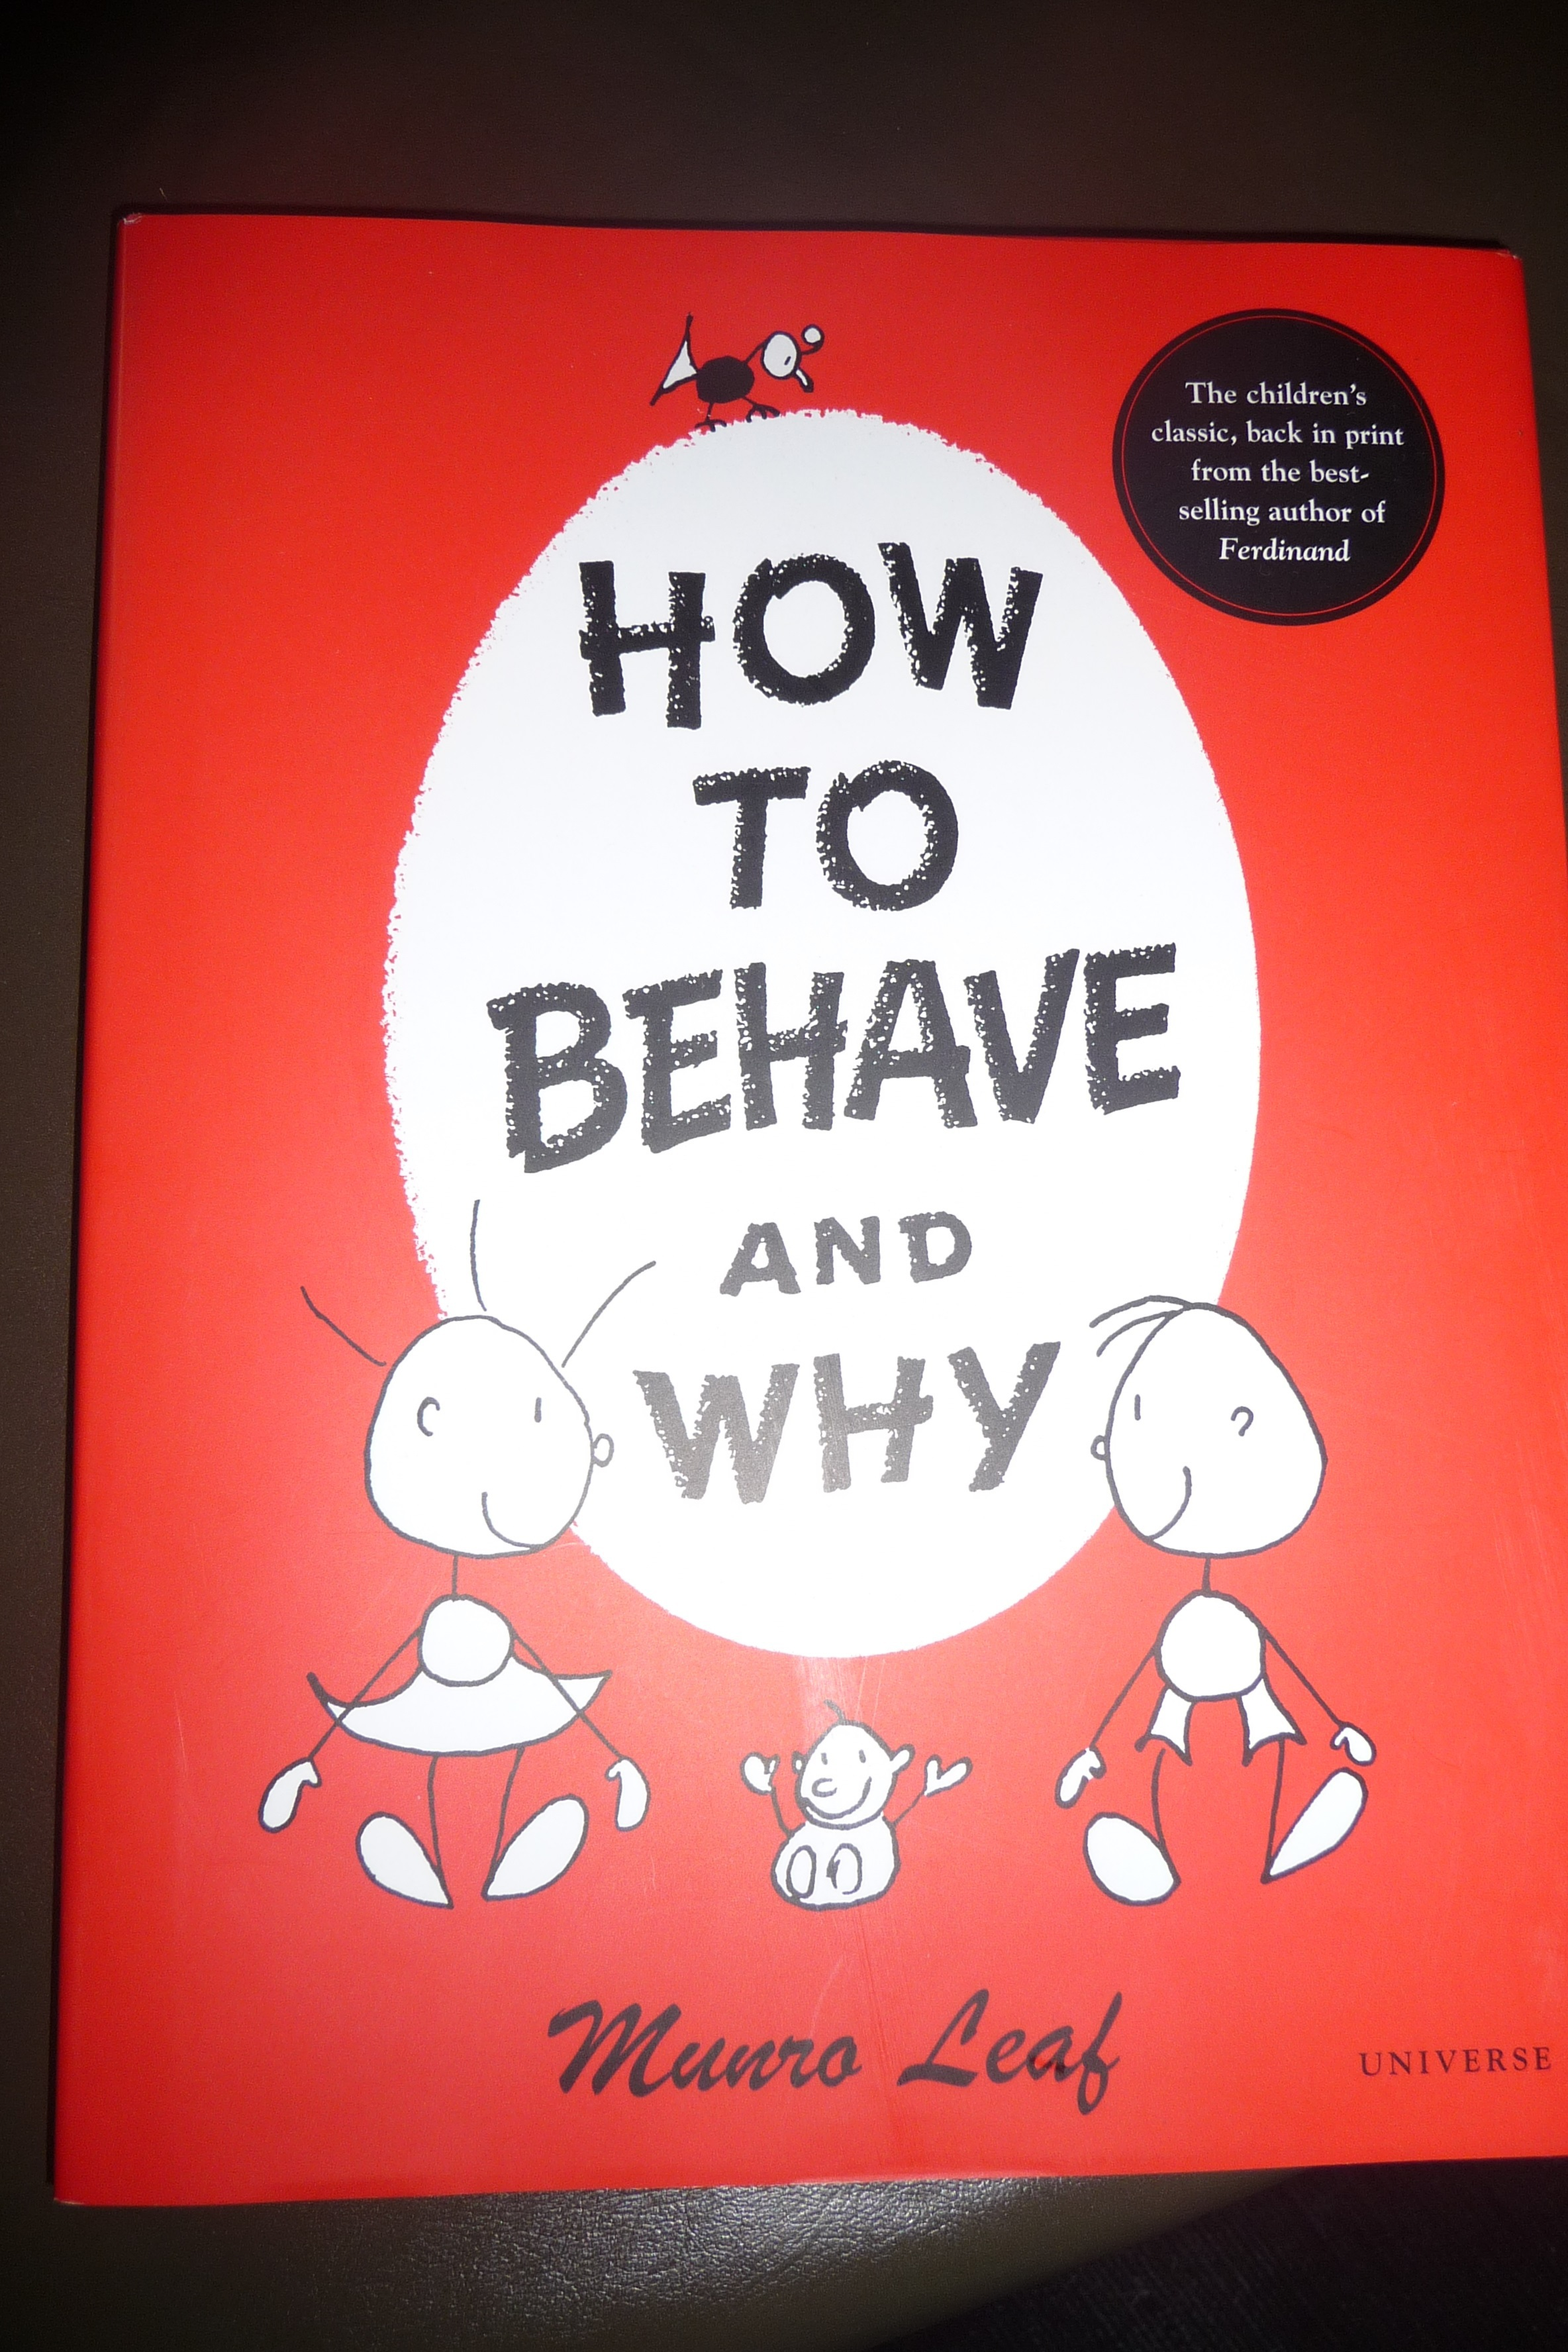 How to behave 63